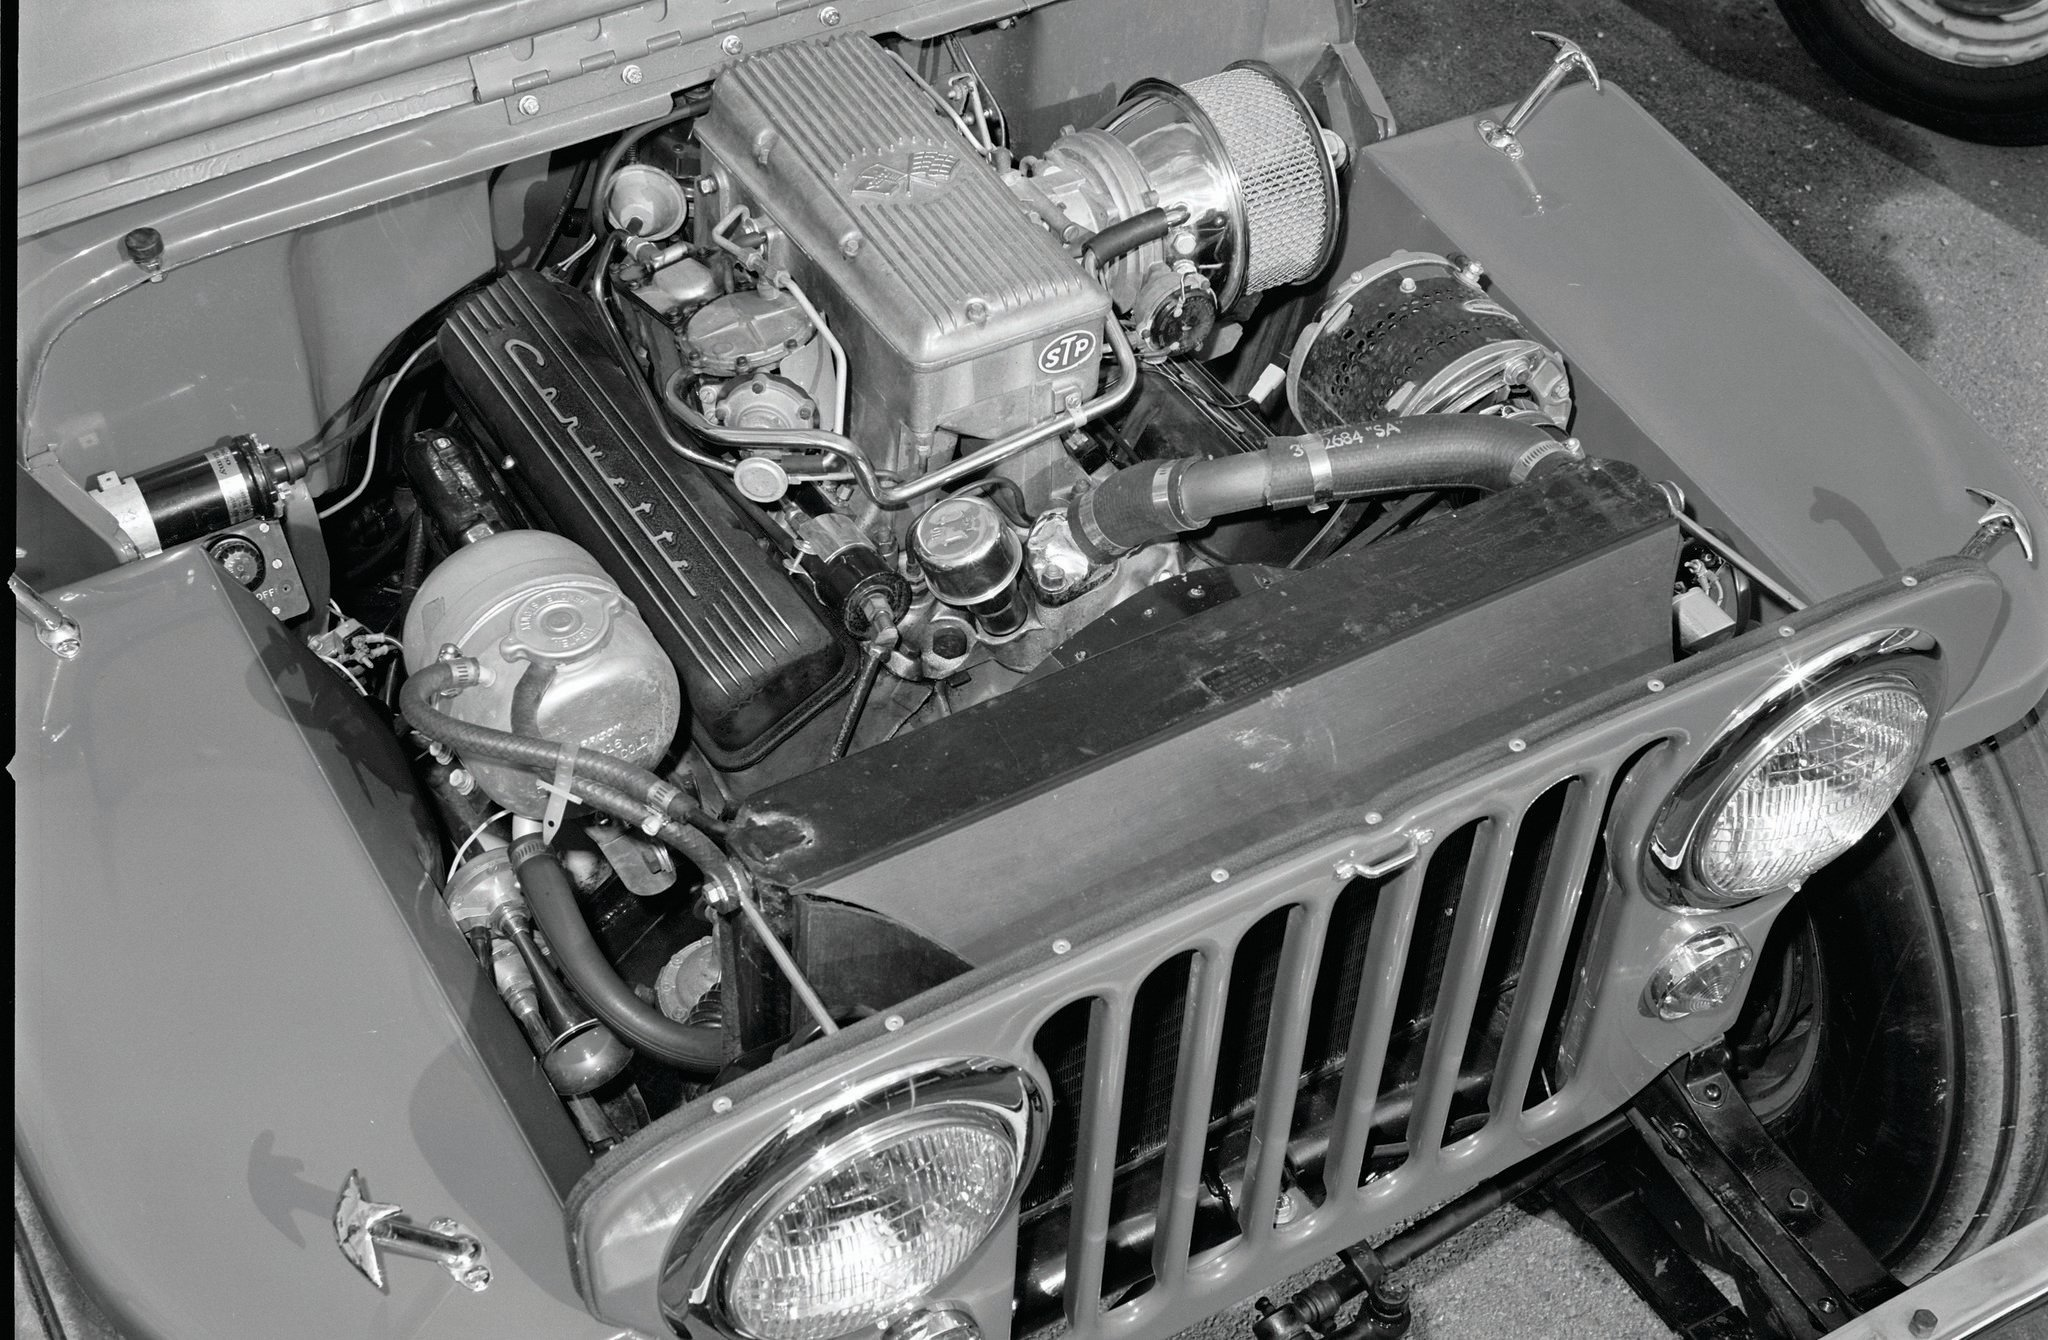 Jeep CJ 3A Engine Photo 70462048